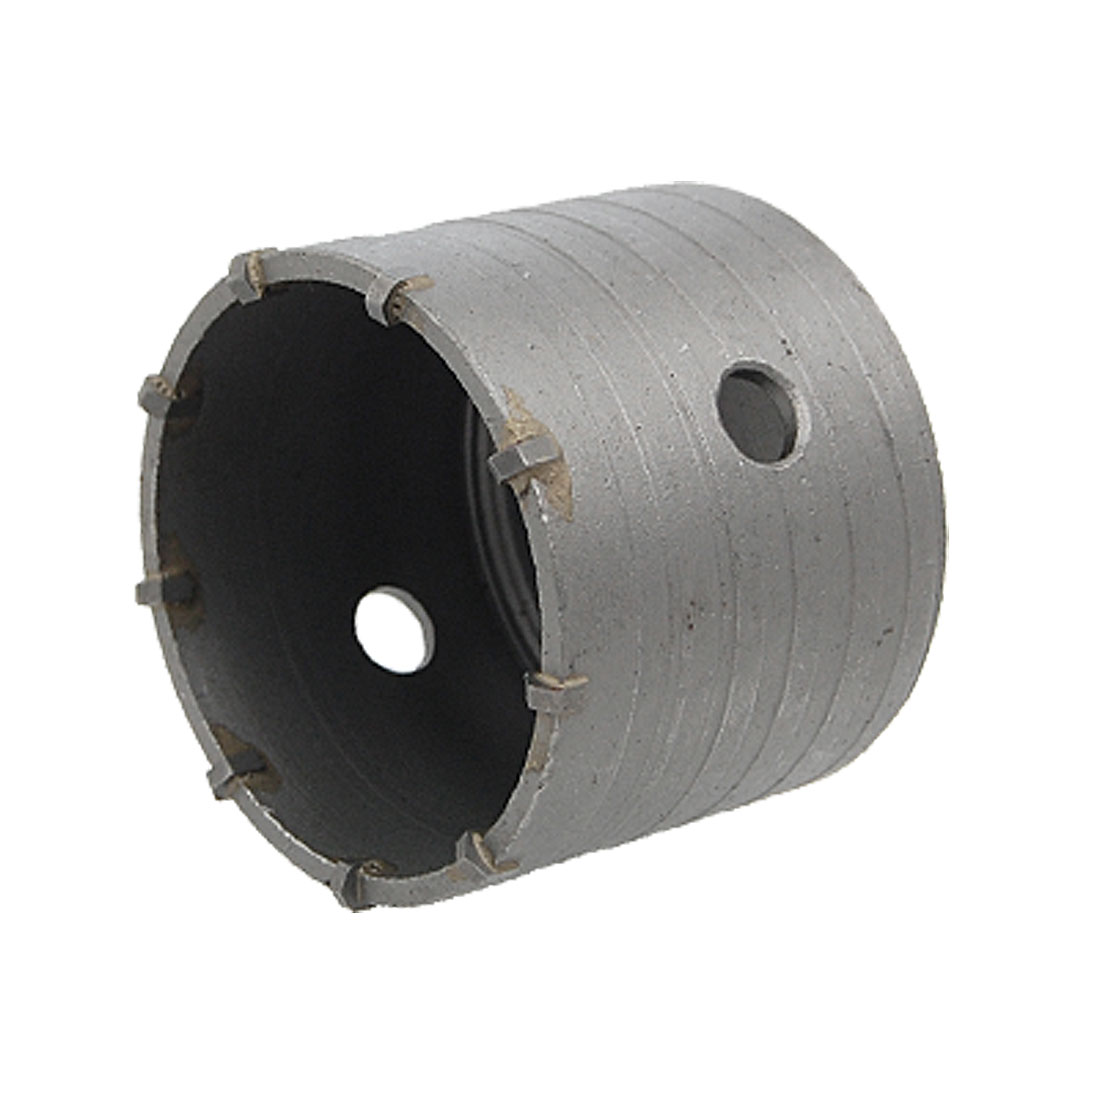 Cement Stone Wall 75mm Cutting Dia Hollow Core Drill Hole Saw